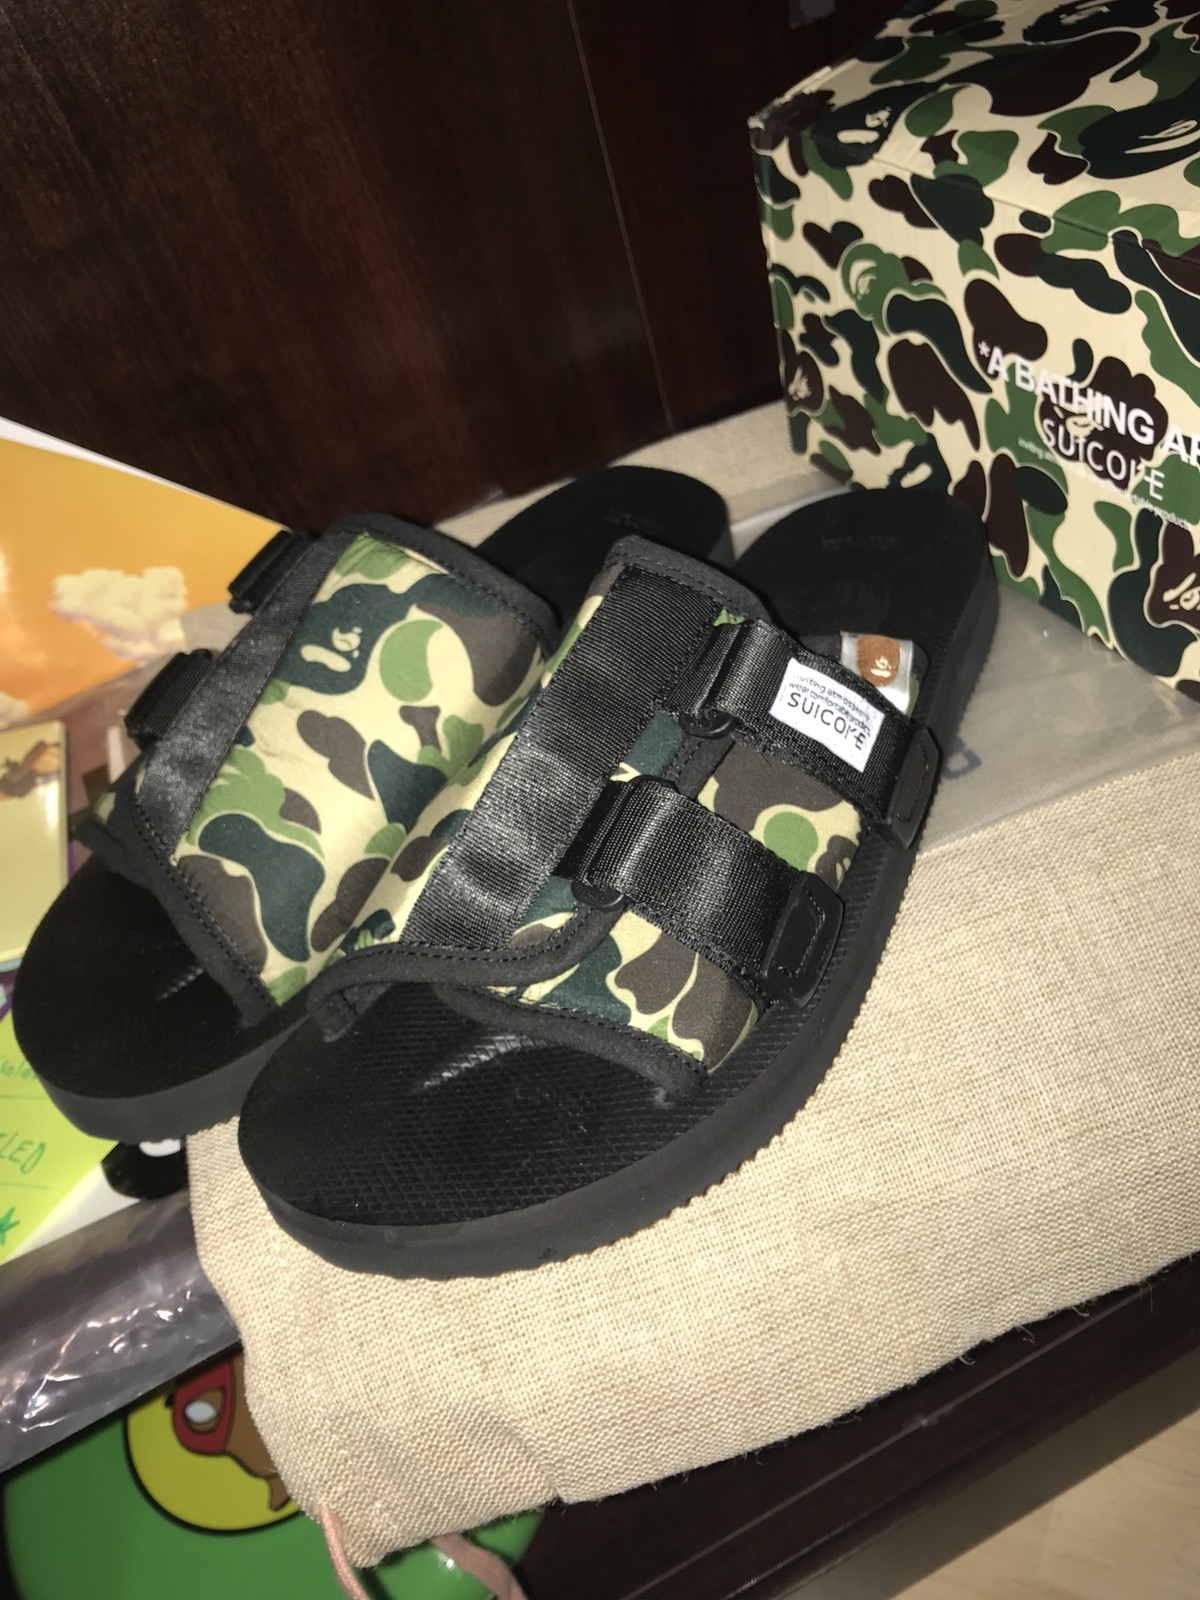 6eb3be5f2ea9 Bape Bape x Suicoke Sandals abc kaw-ape mens Black Slip Ons Green Abc Camo  Size 10 - Sandals for Sale - Grailed